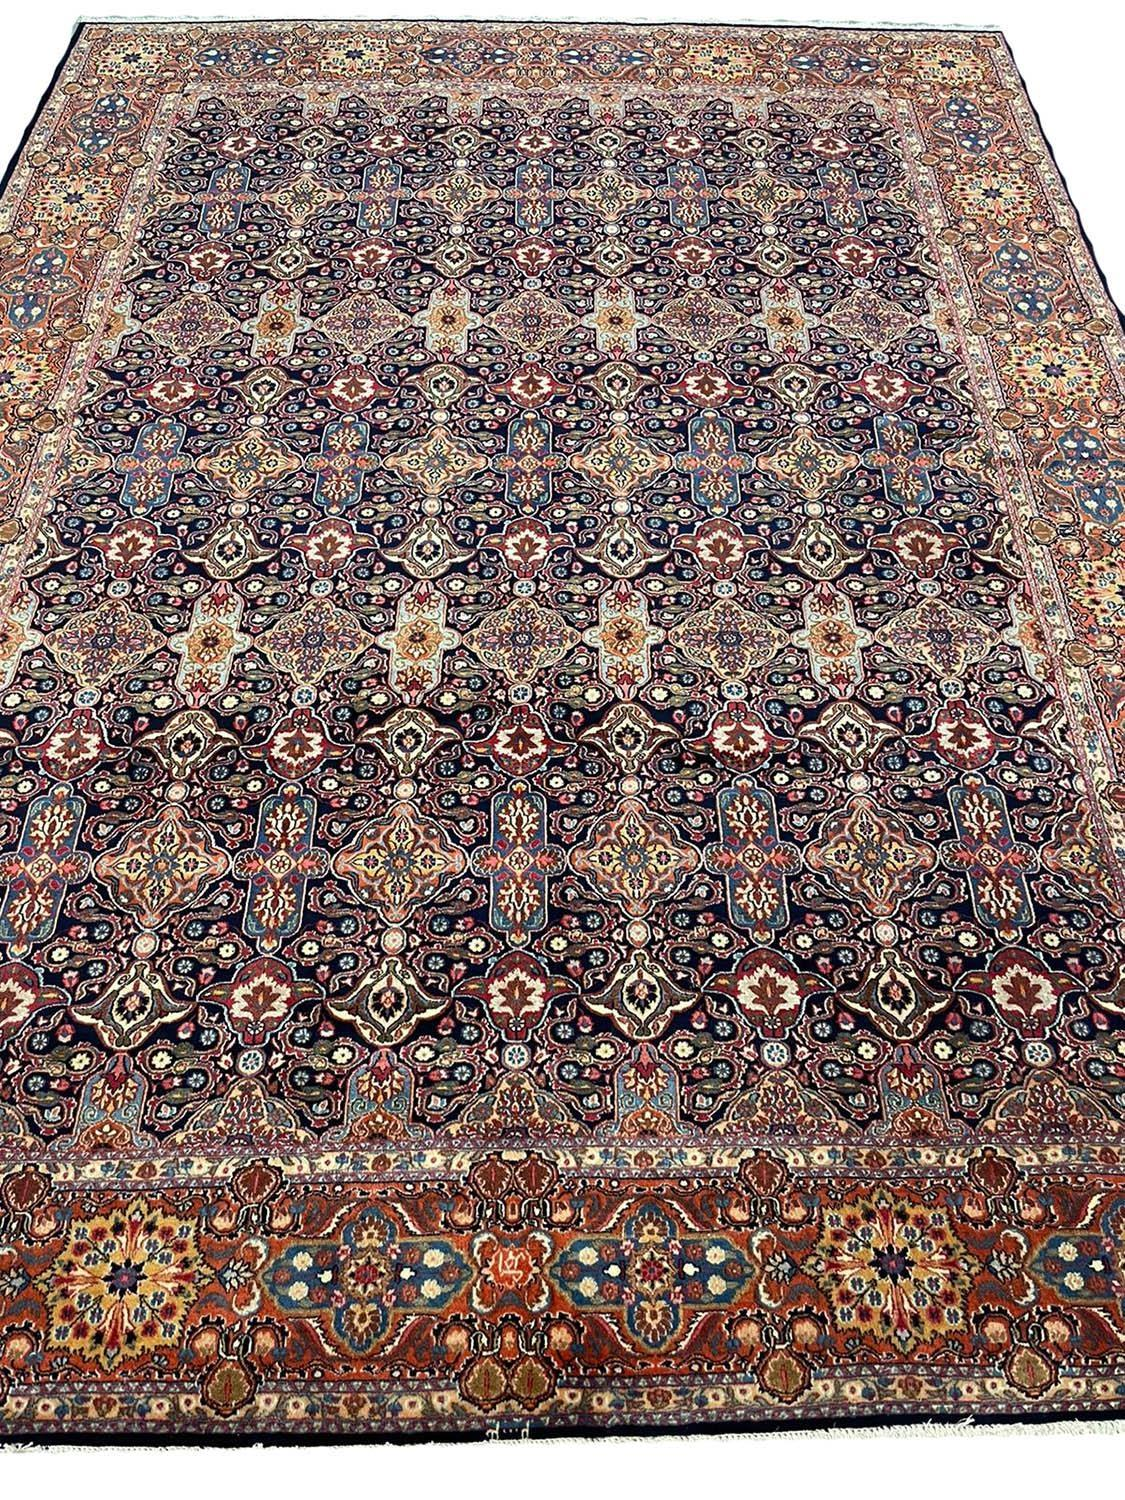 FINE ANTIQUE PERSIAN KHORASSAN CARPET, 340cm x 260cm.